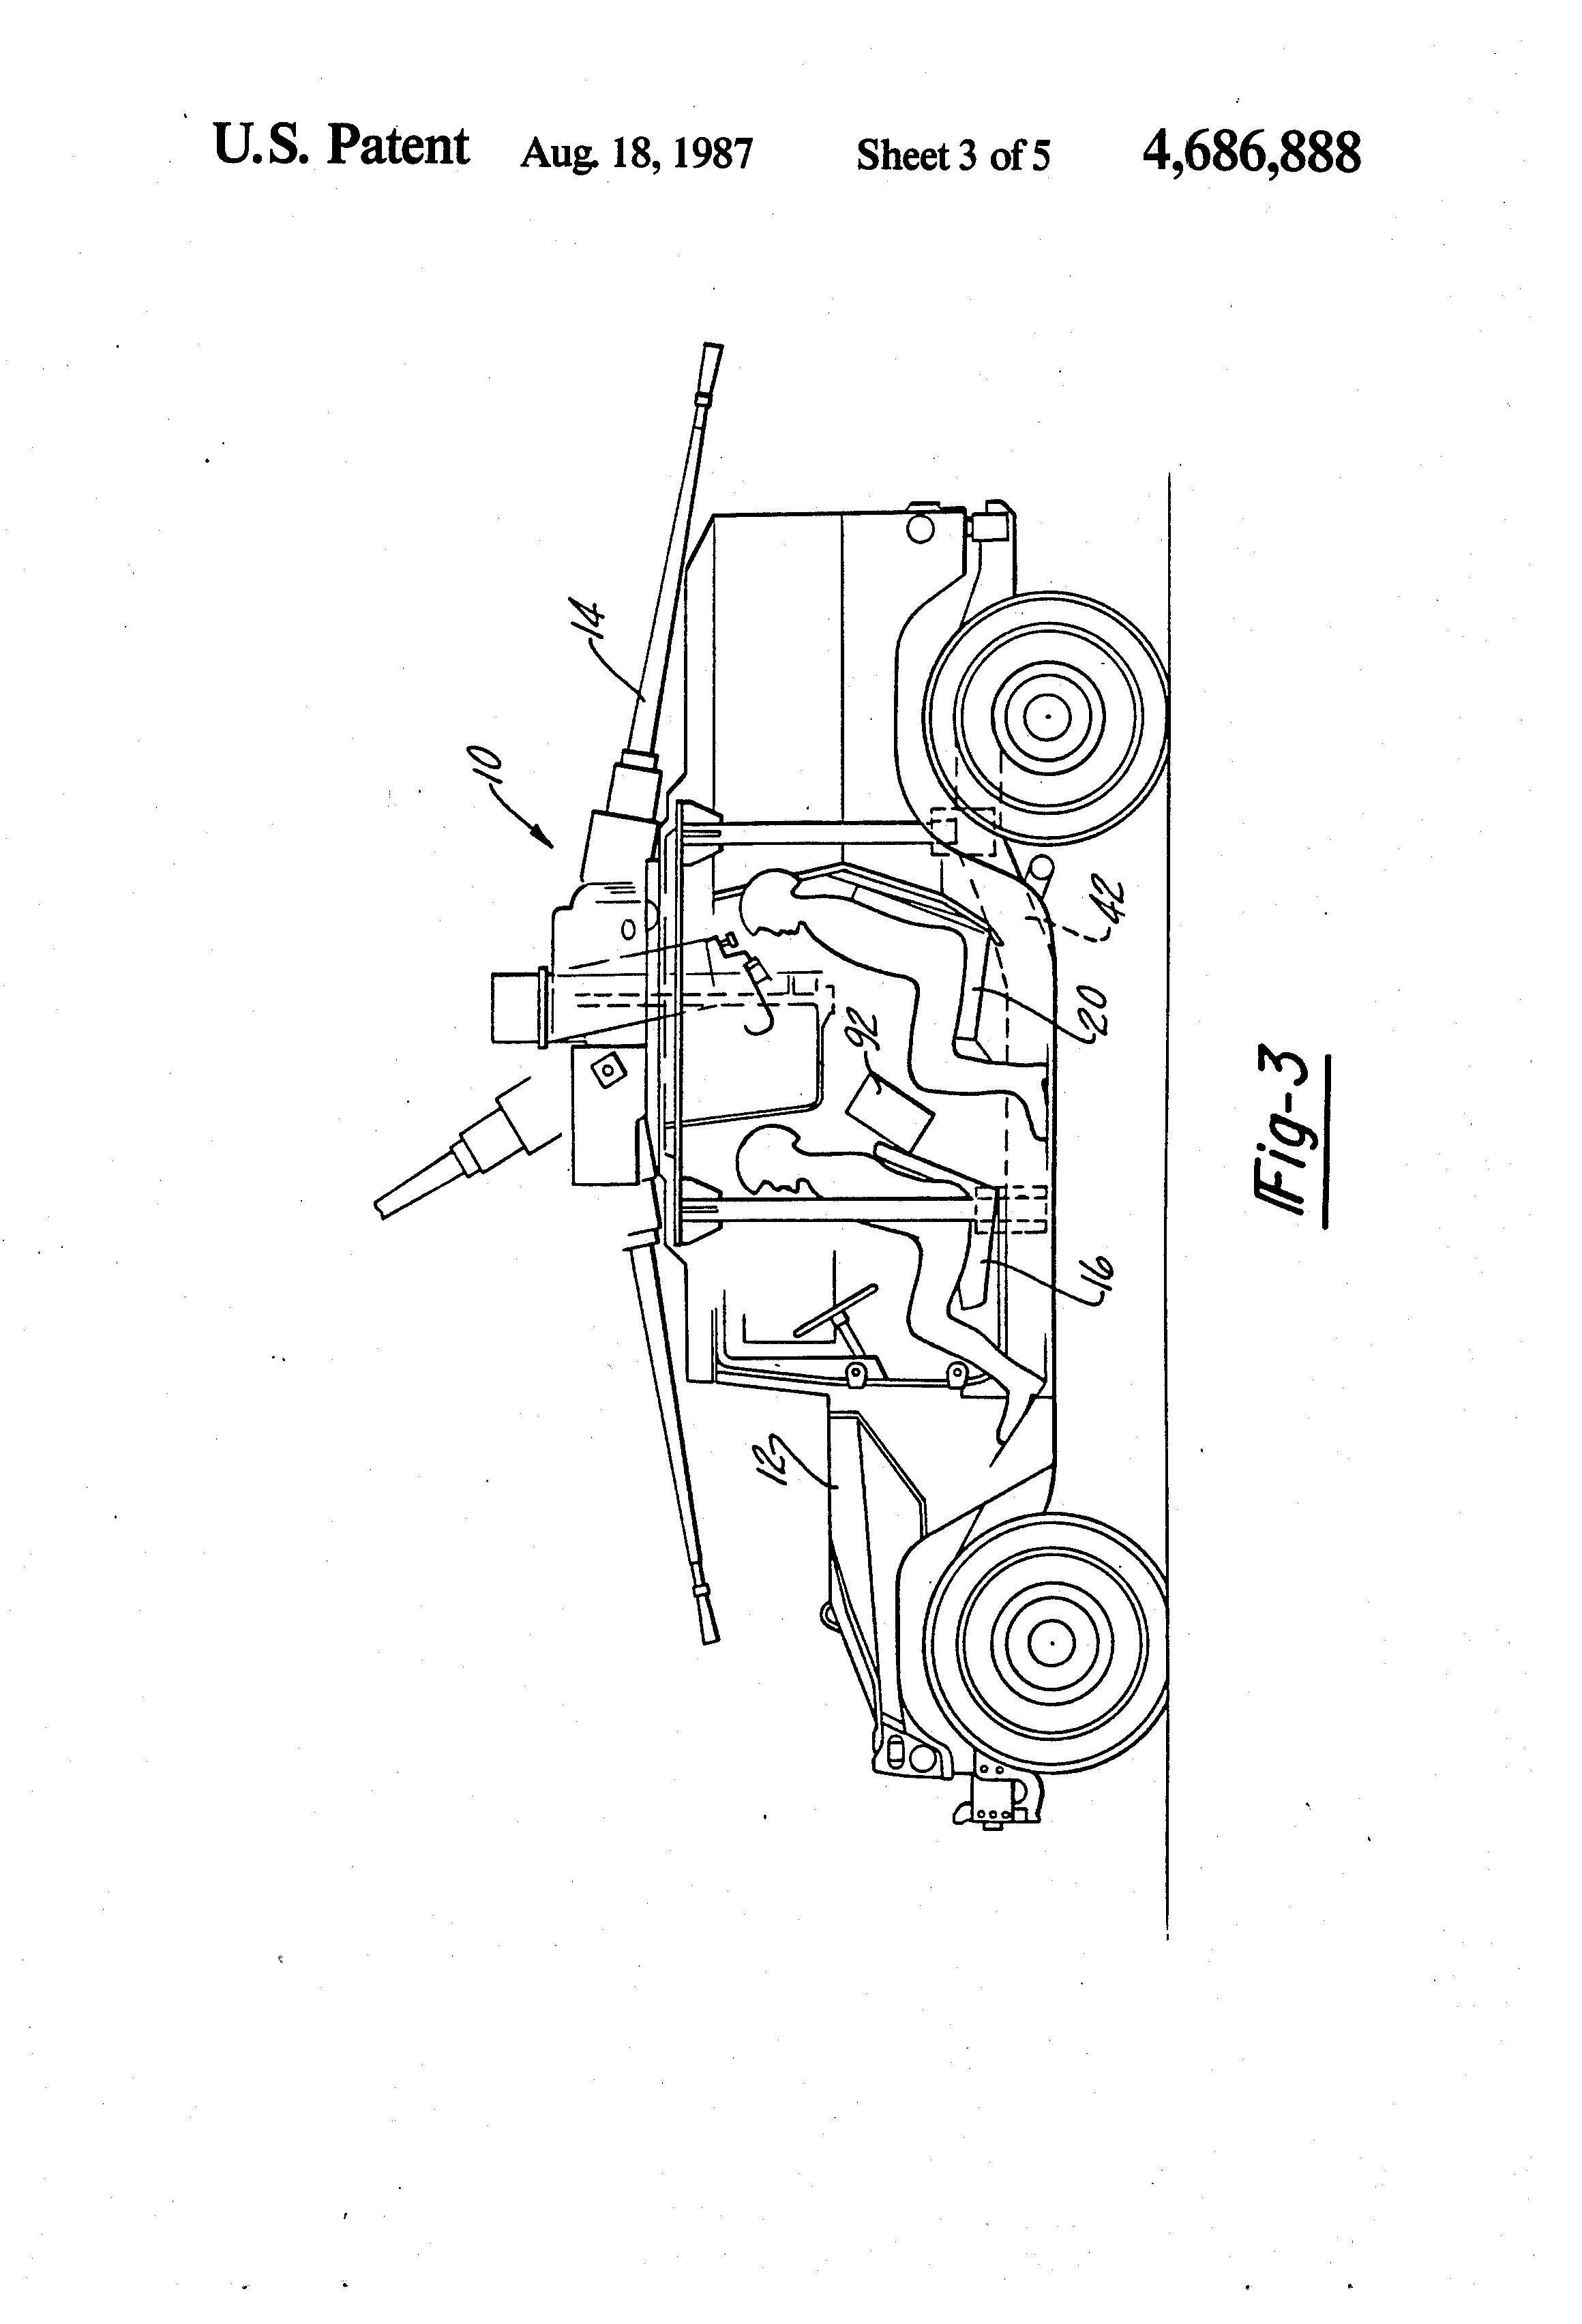 2005 Scion Xb Body Parts Diagram Electrical Wiring Diagrams 2006 Tc Patent Us4686888 Turret System For Lightweight Military Vehicle Belt Replacement